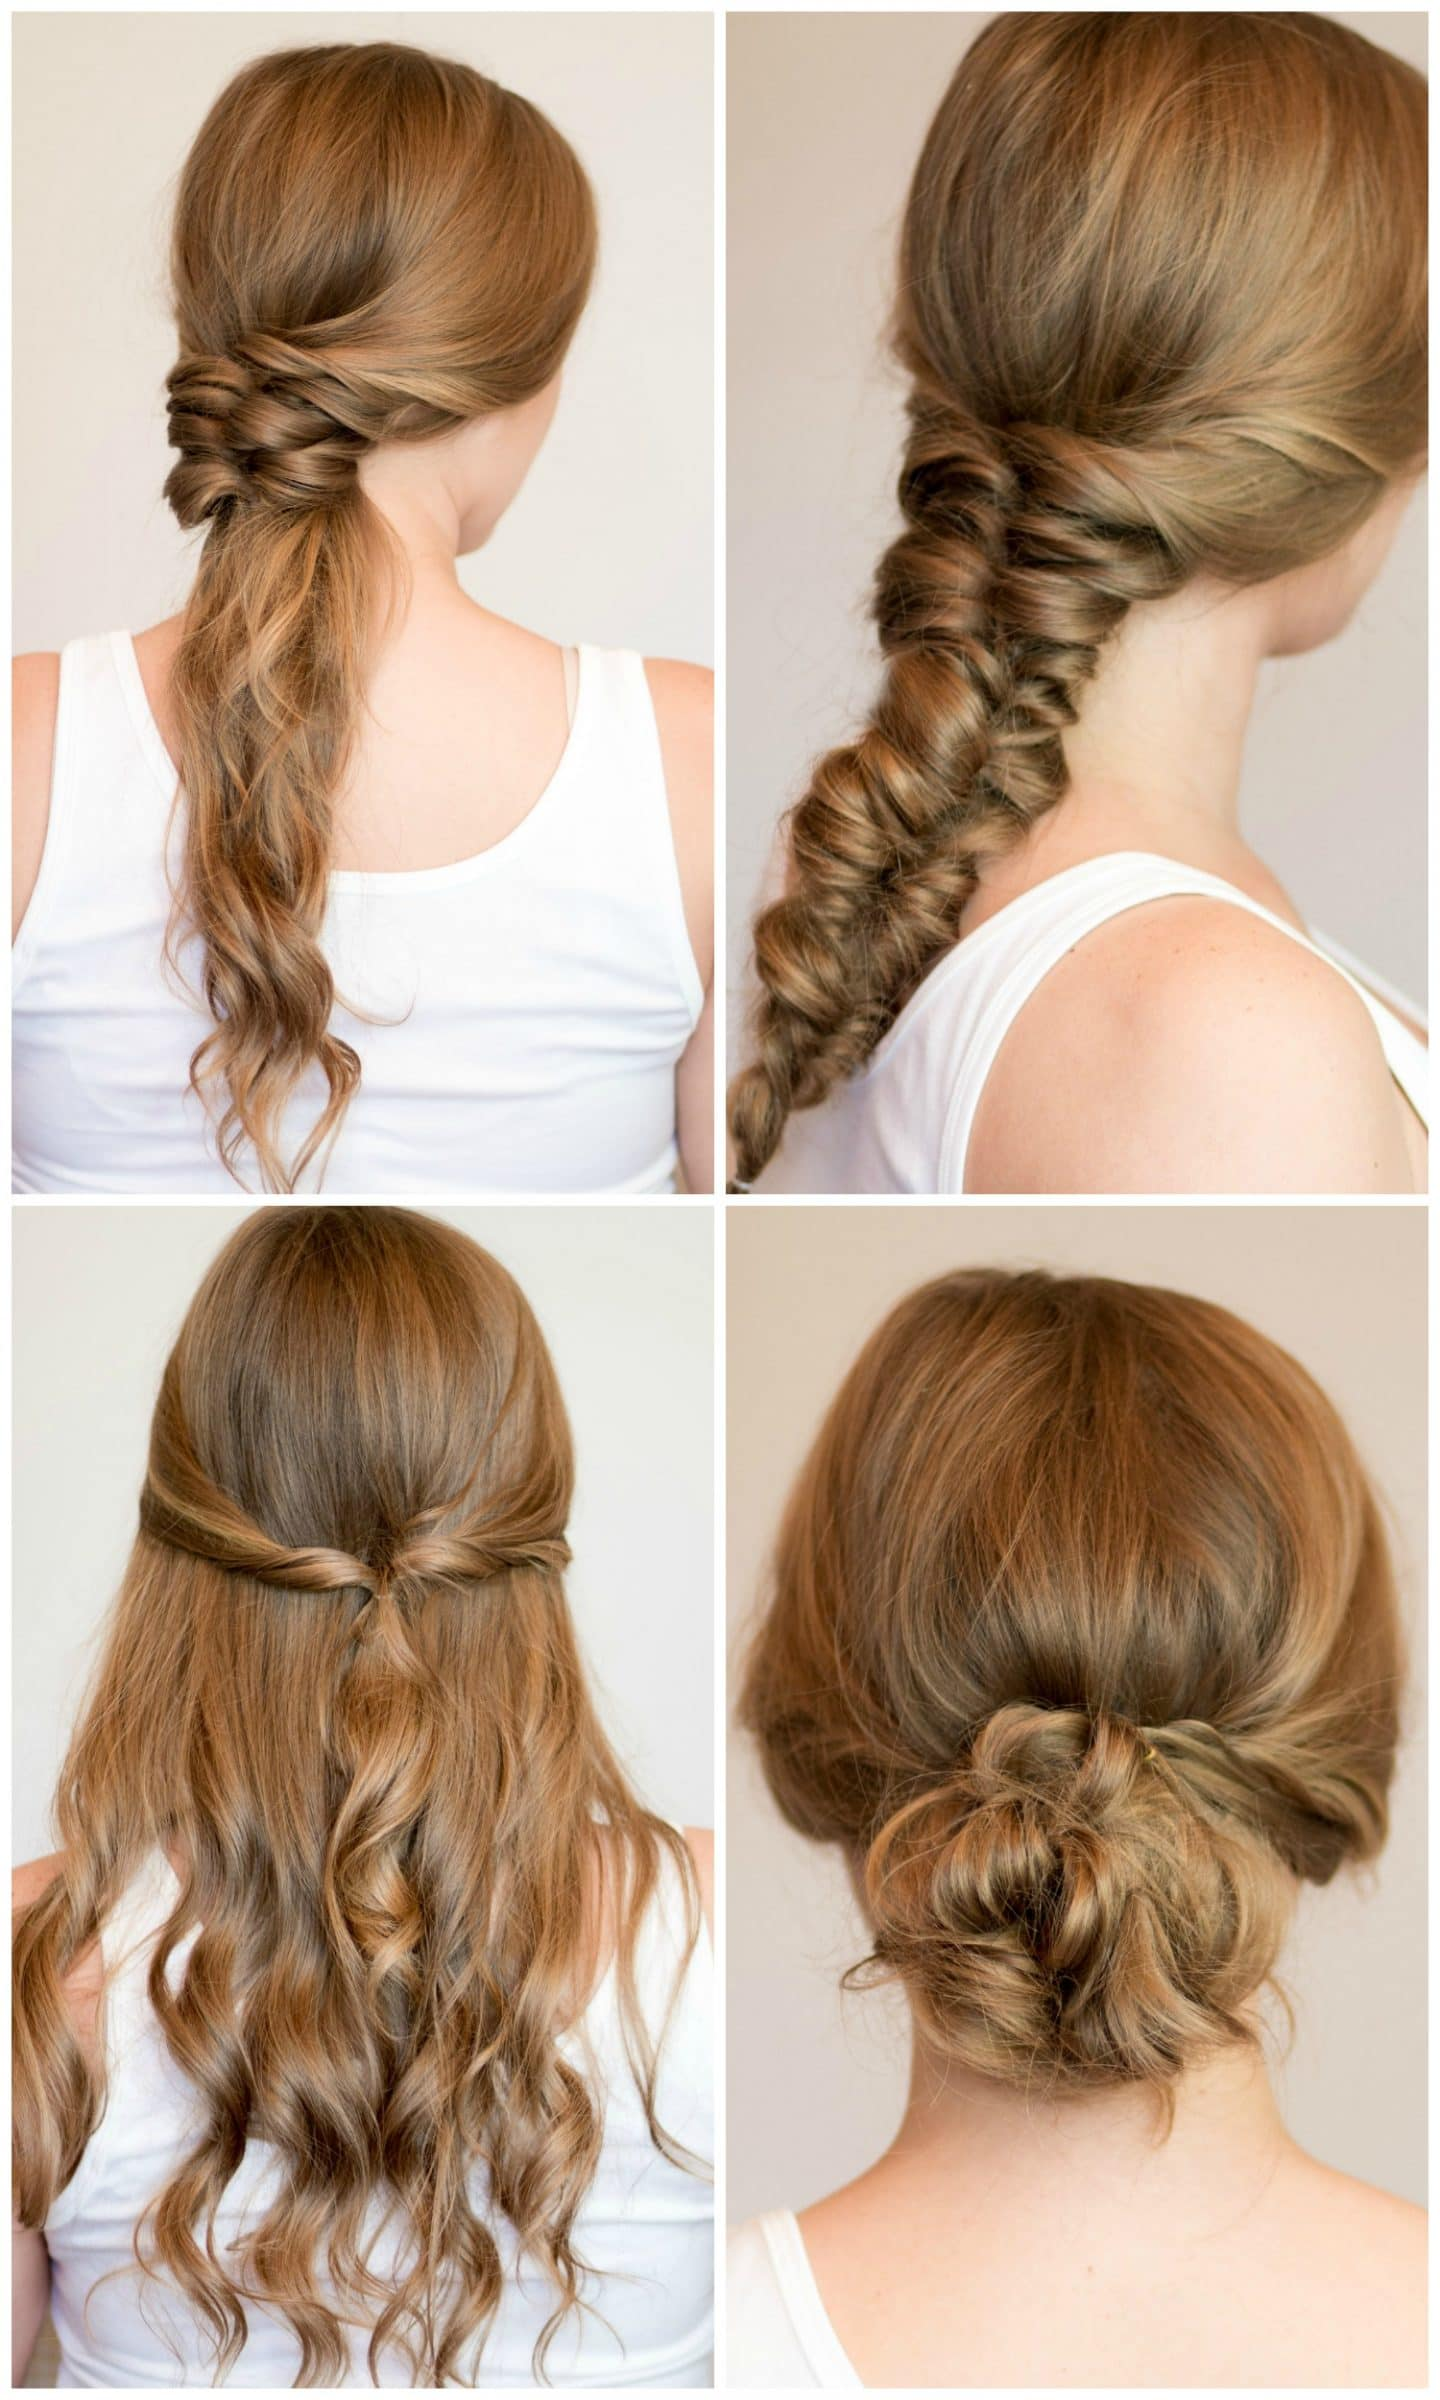 4 Easy heatless hairstyles for long hair that don't require hair styling skills or braiding! Learn how to create a faux braided ponytail, messy faux fishtail braid, twisted half-up, and messy braided bun in these easy hair tutorial by Orlando, Florida beauty blogger Ashley Brooke Nicholas! #MyHCLook sponsored by Hair Cuttery | easy hairstyles, no-heat hairstyle, faux  braids, faux braid tutorial, how to braid your hair, messy bun, fishtail braid, dirty blonde hair, heatless hairstyle tutorial